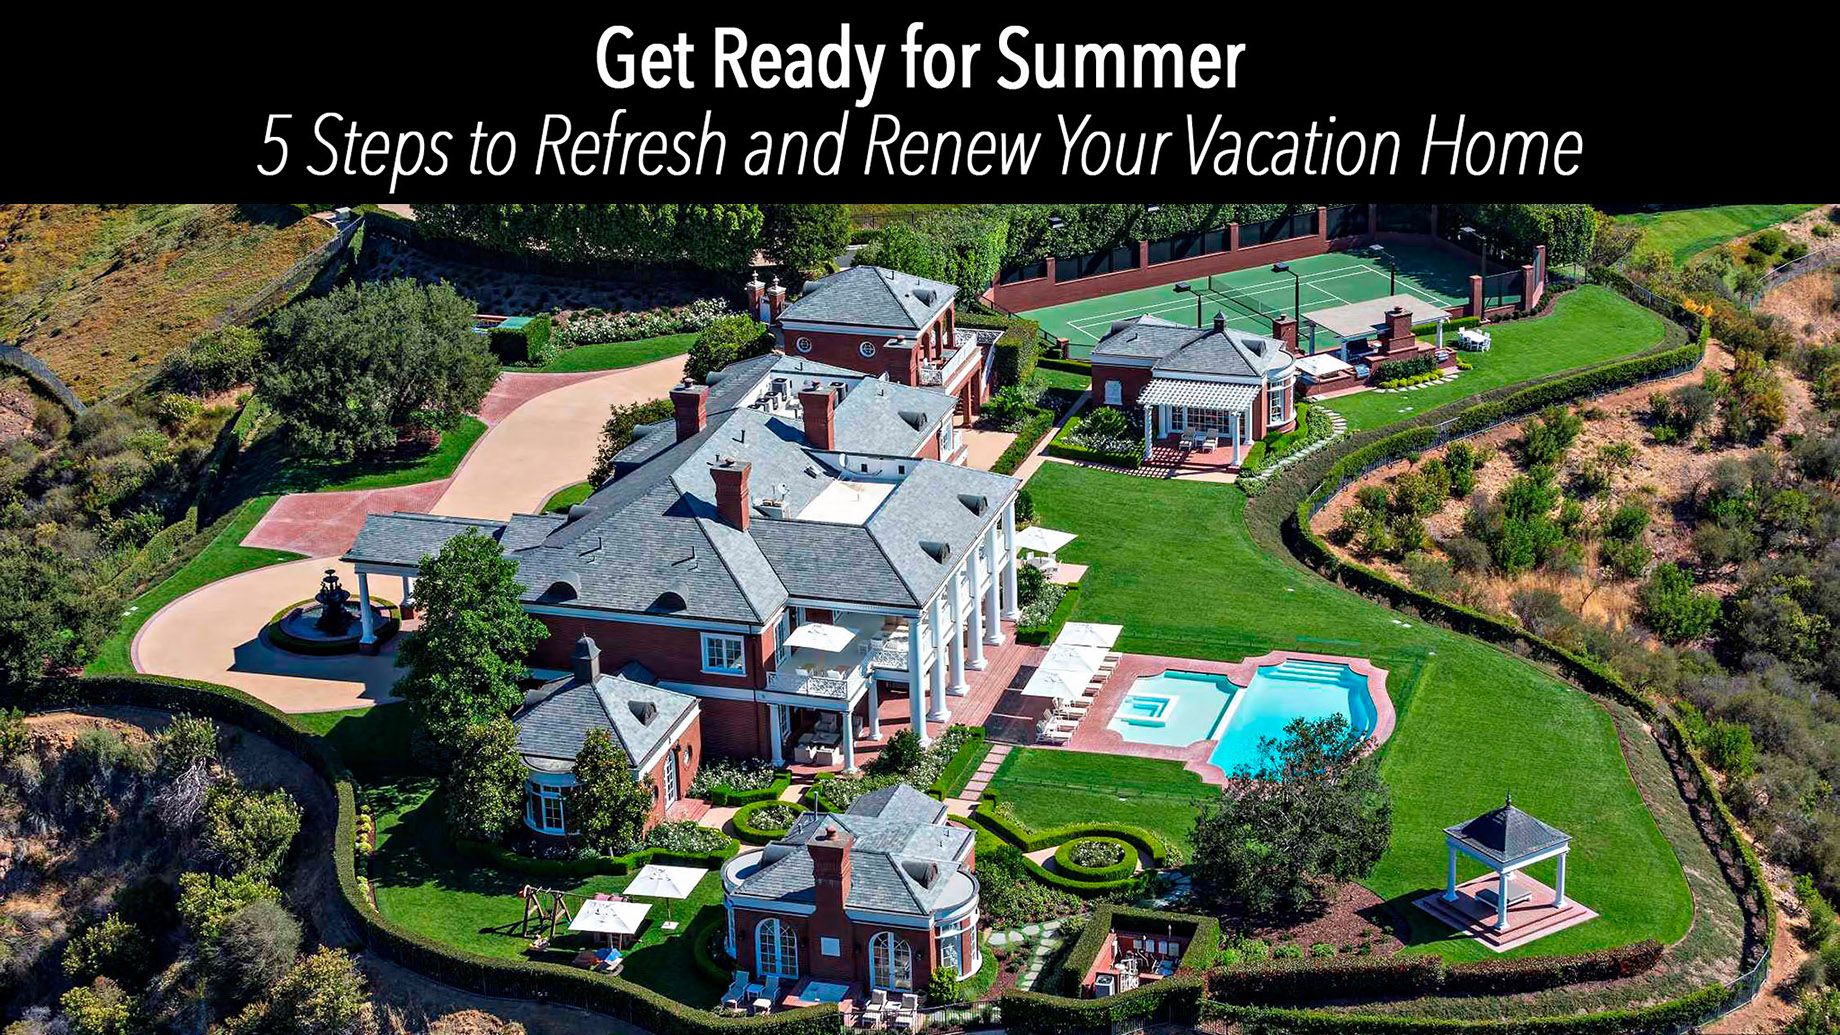 Get Ready for Summer - 5 Steps to Refresh and Renew Your Vacation Home